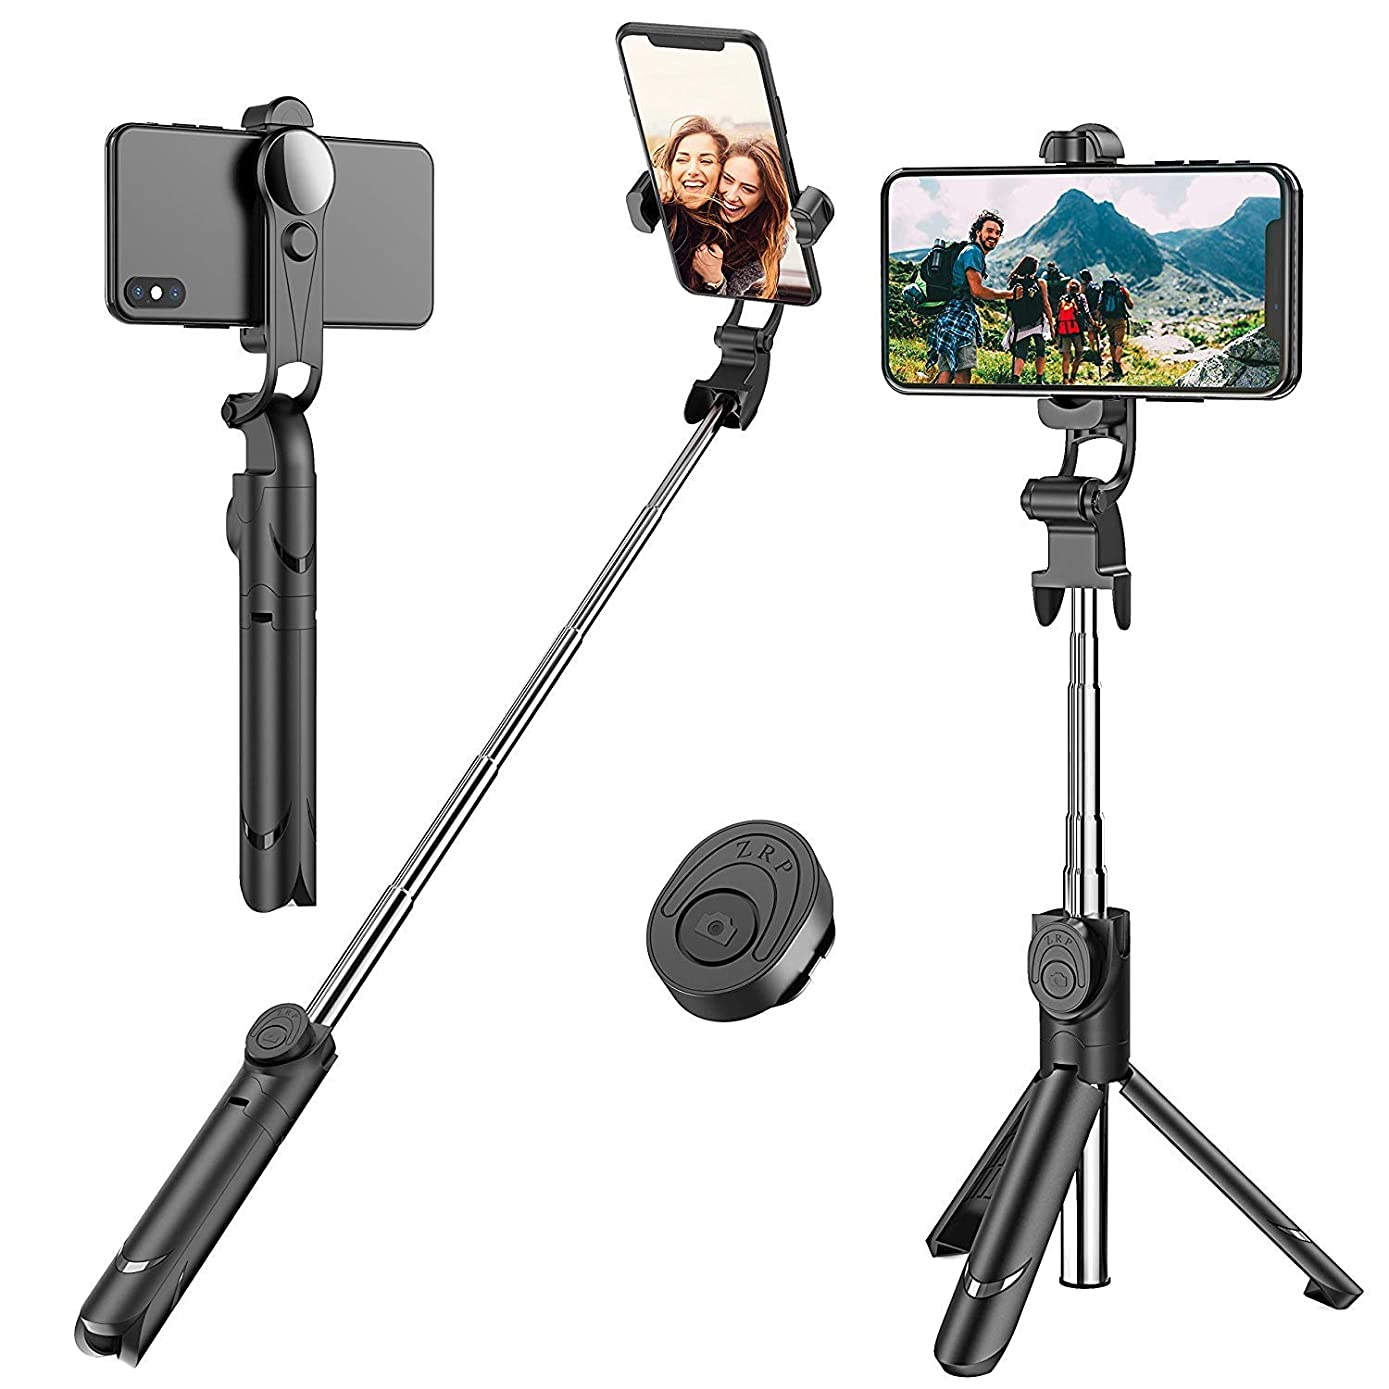 Cell Phone Selfie Stick Tripod,Extendable Monopod with Wireless Remote Shutter, Tripod Stand Compatible with iPhone X/8/8 Plus/7/Samsung Galaxy Note 9/S9/Huawei/Google